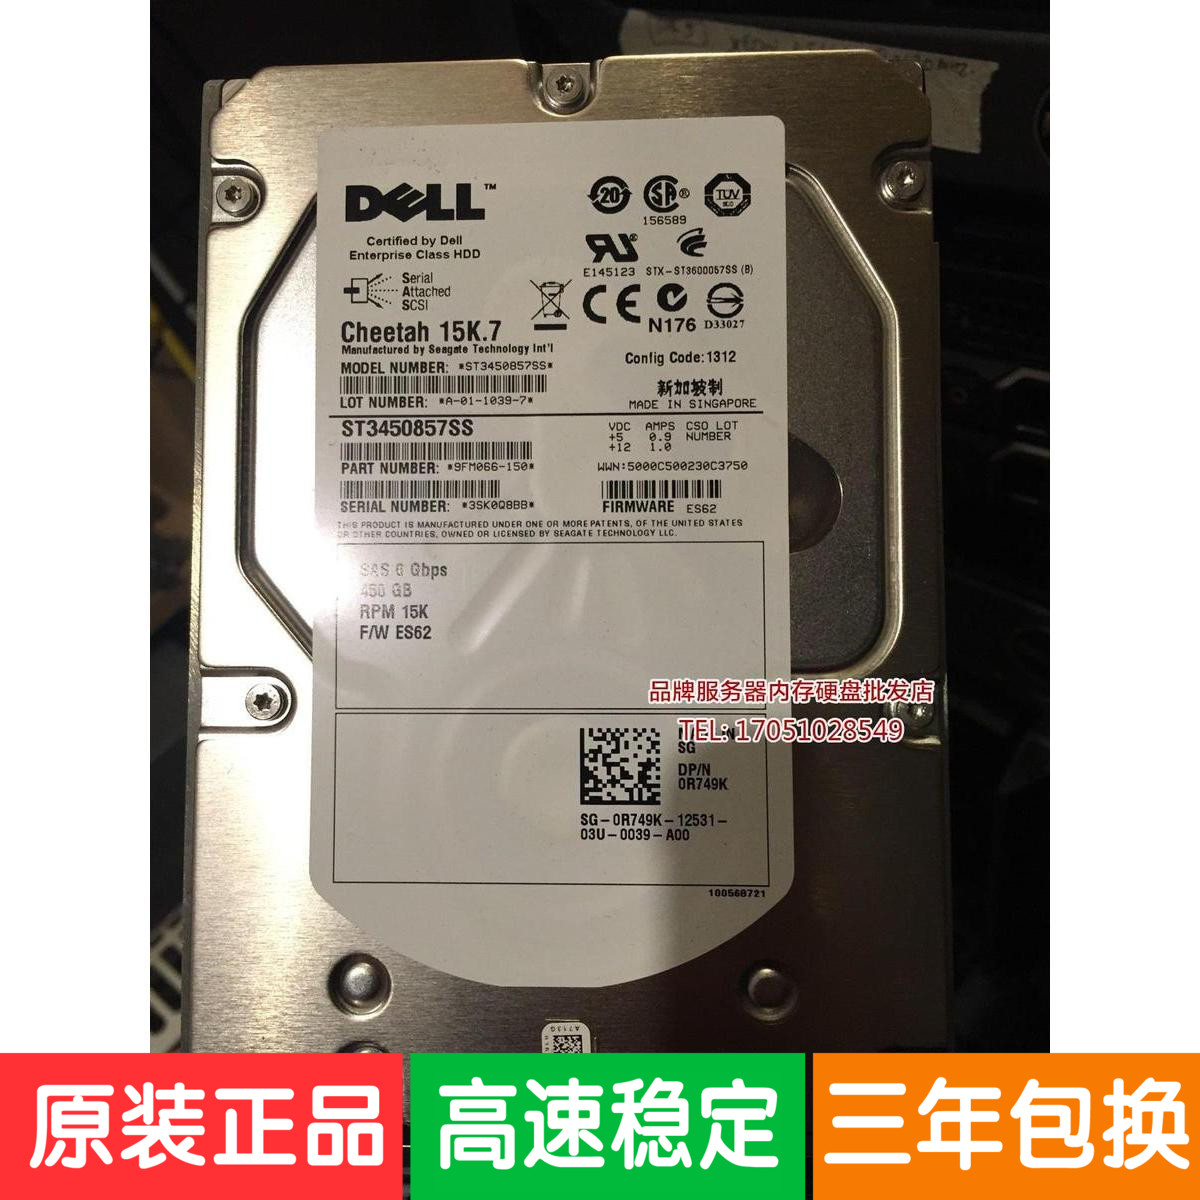 26 77]cheap purchase Dell/Dell 300G 10K SAS 2 5 inch 3GB ST9300603SS